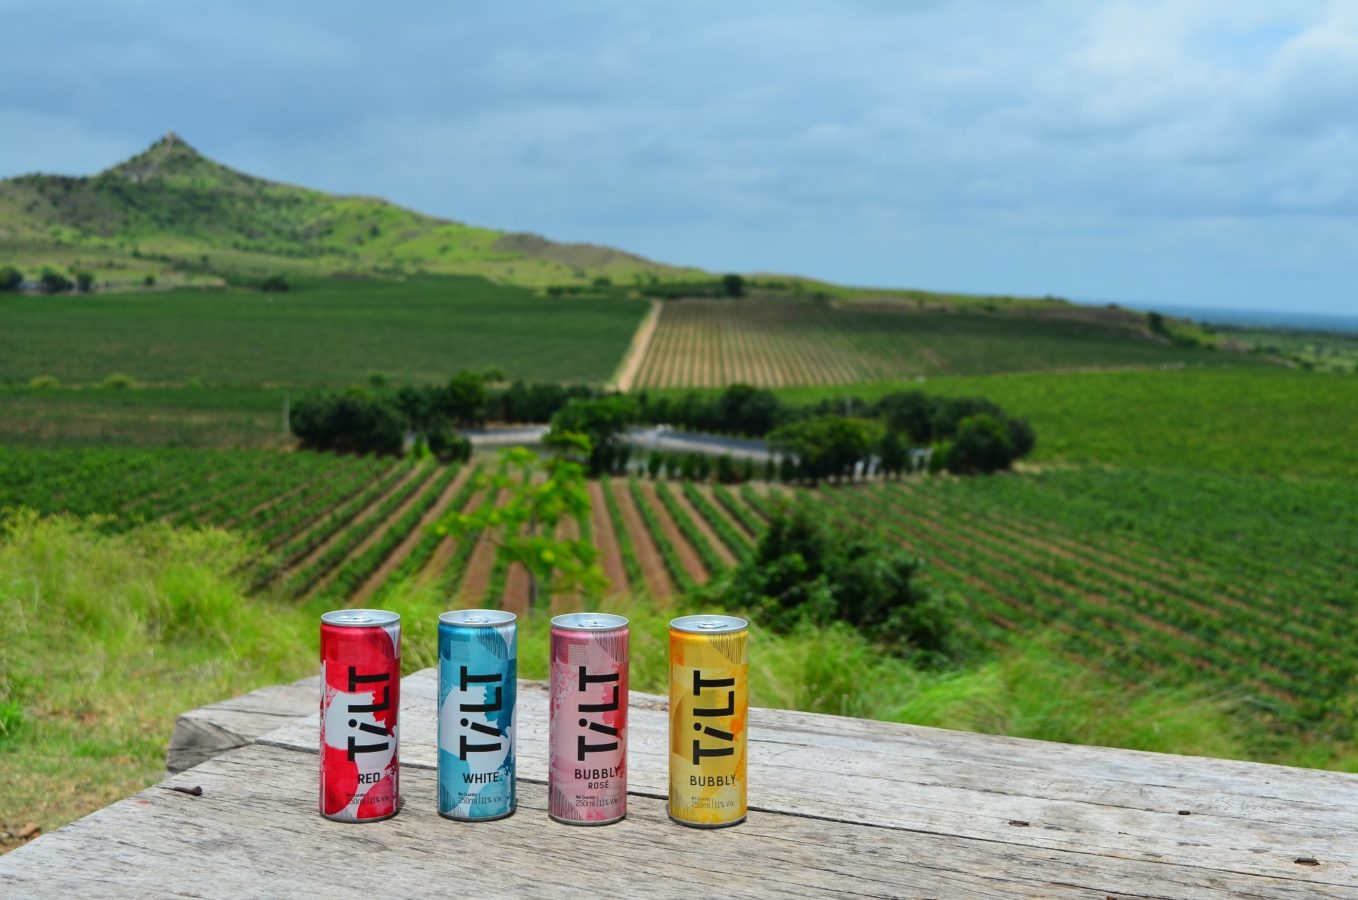 Wine in a can: It's all about laidback luxury for millennials